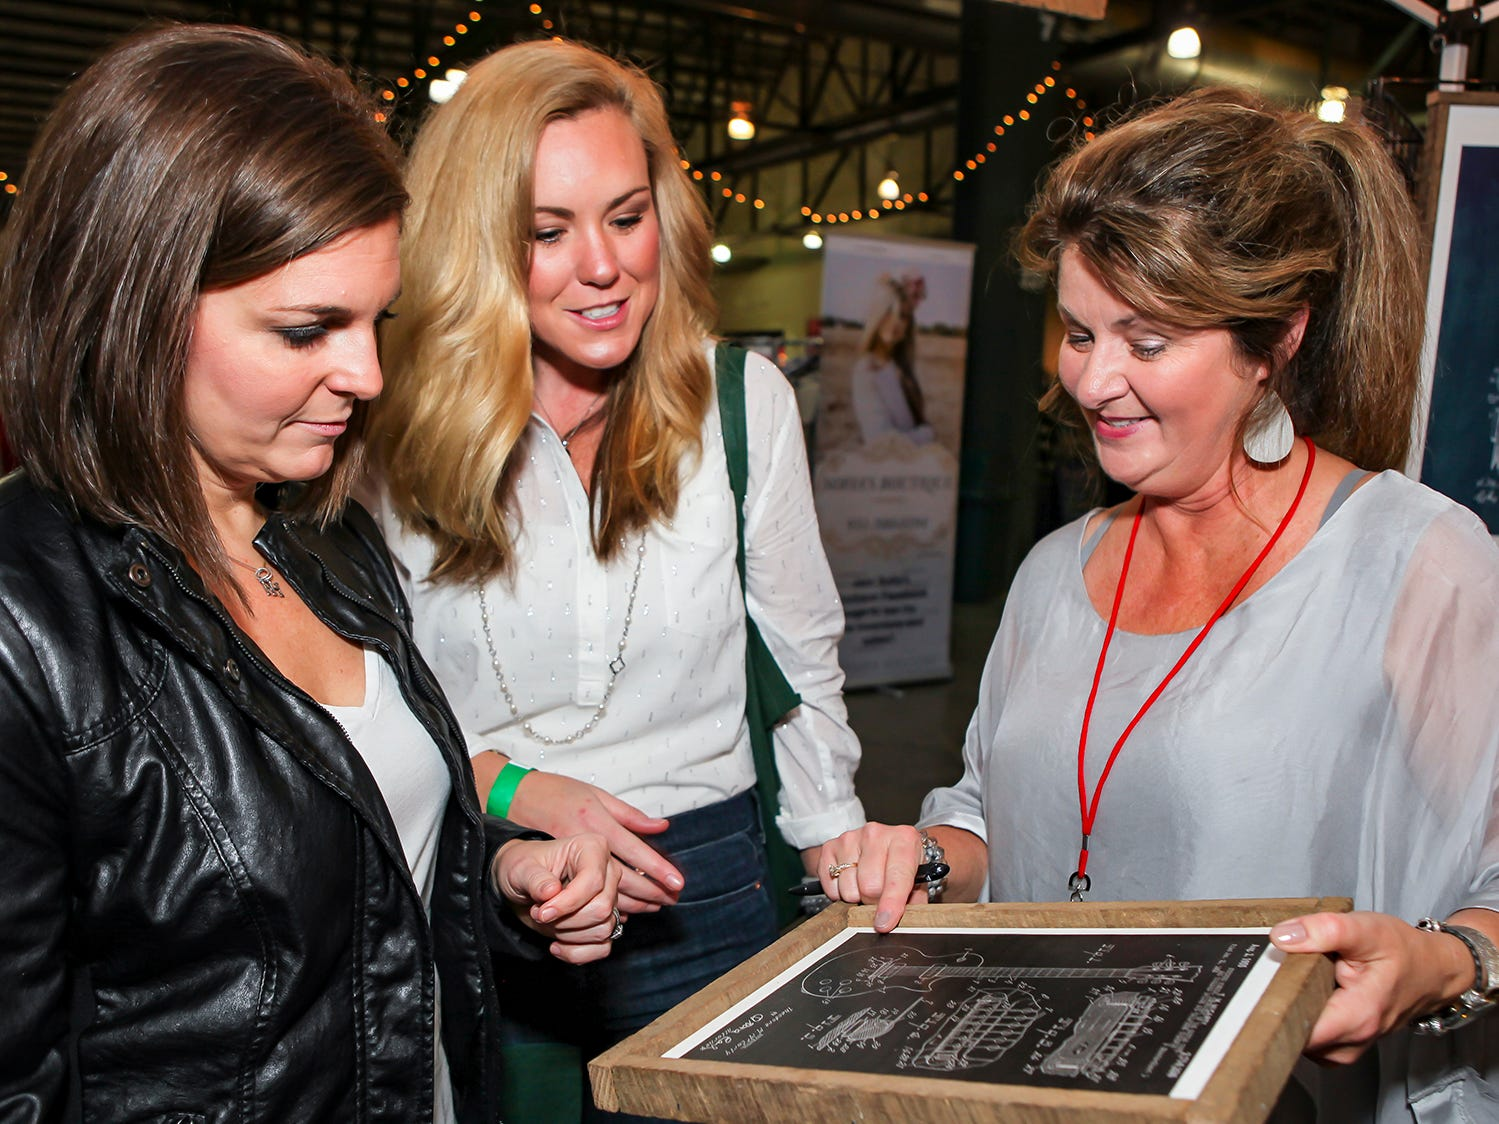 Amanda Hanna, Julia Mckenna and Lee Ann Richardson check out items for sale at Mistletoe & Martinis on Friday, Nov. 30, the preview party for the 2018 Hollyday Marketplace hosted by the Junior League of Murfreesboro.